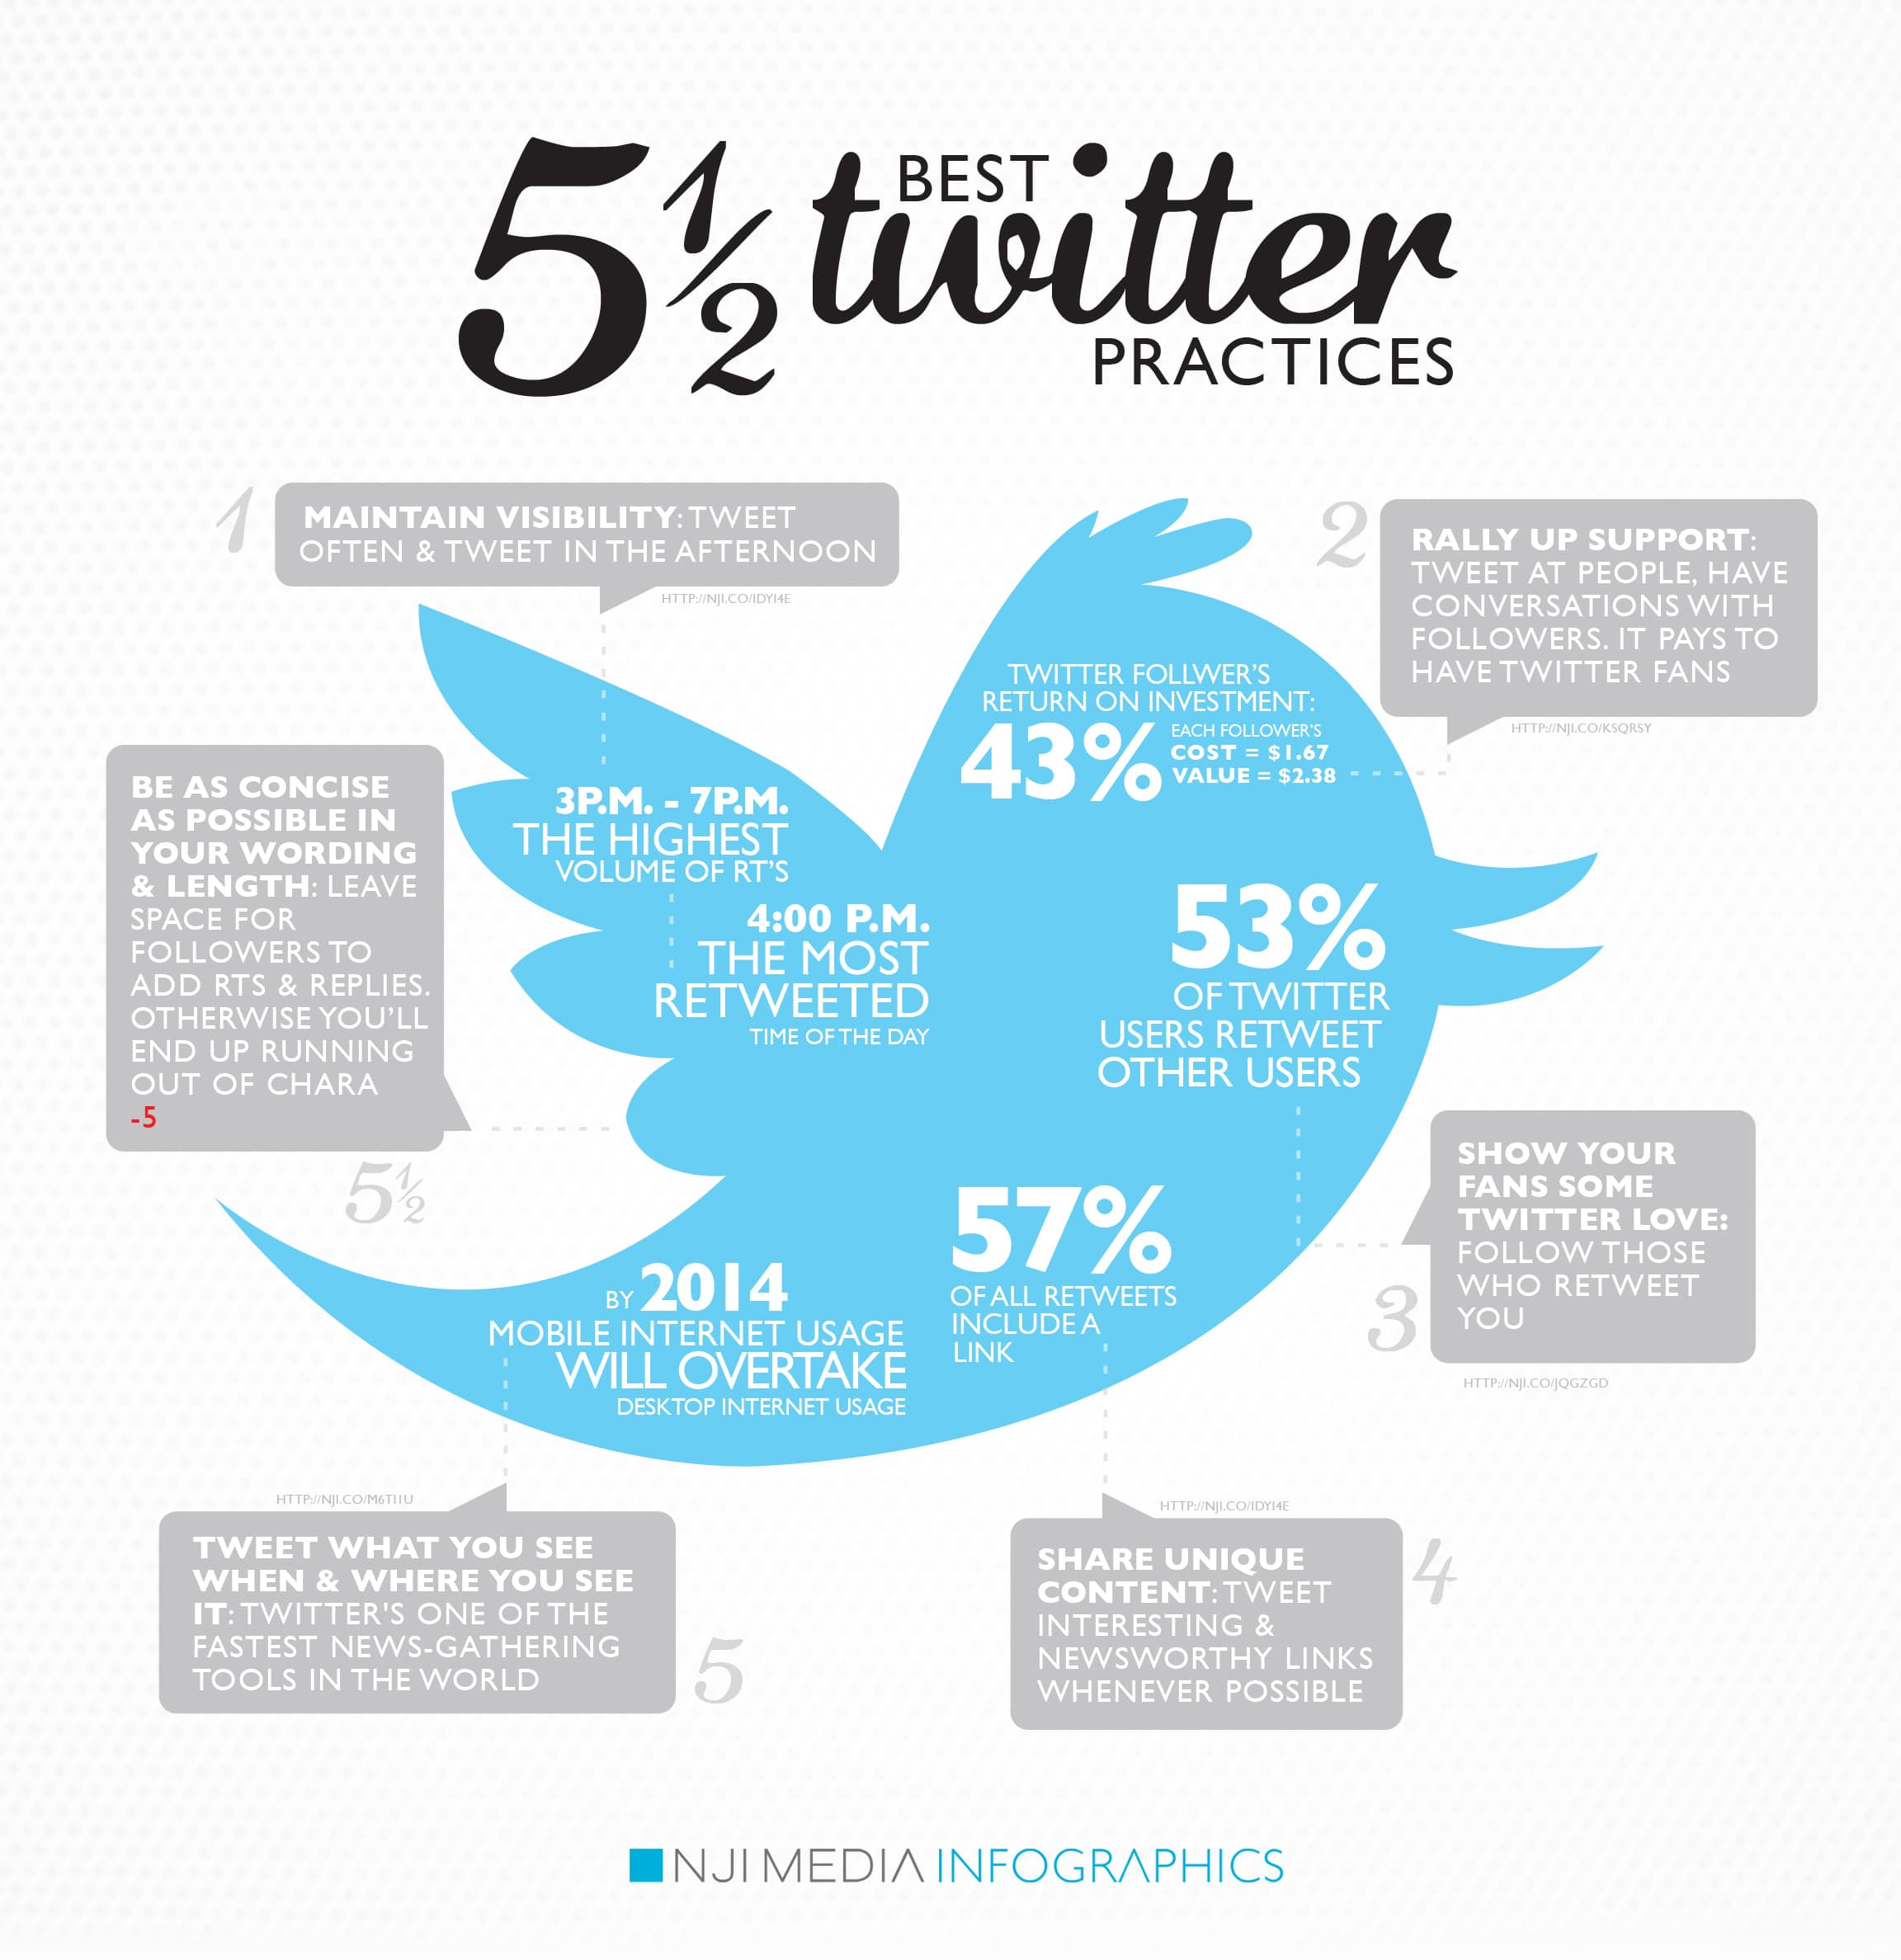 2012-best-twitter-practices-infographic